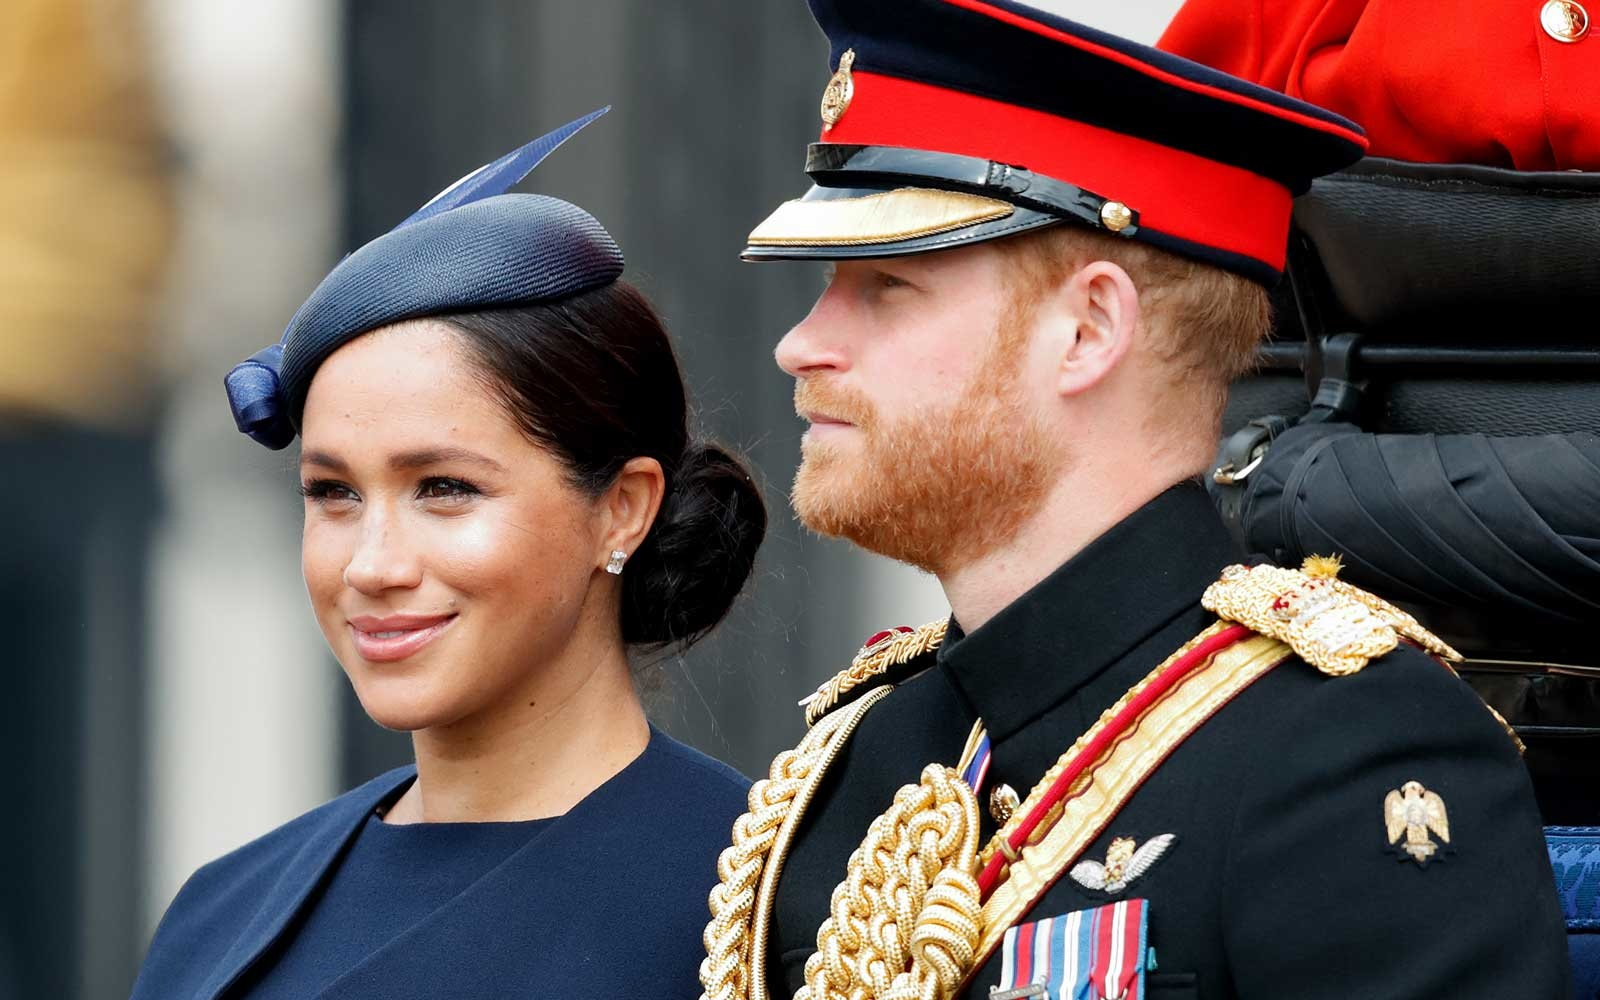 Prince Harry & Meghan Markle slammed for flying private